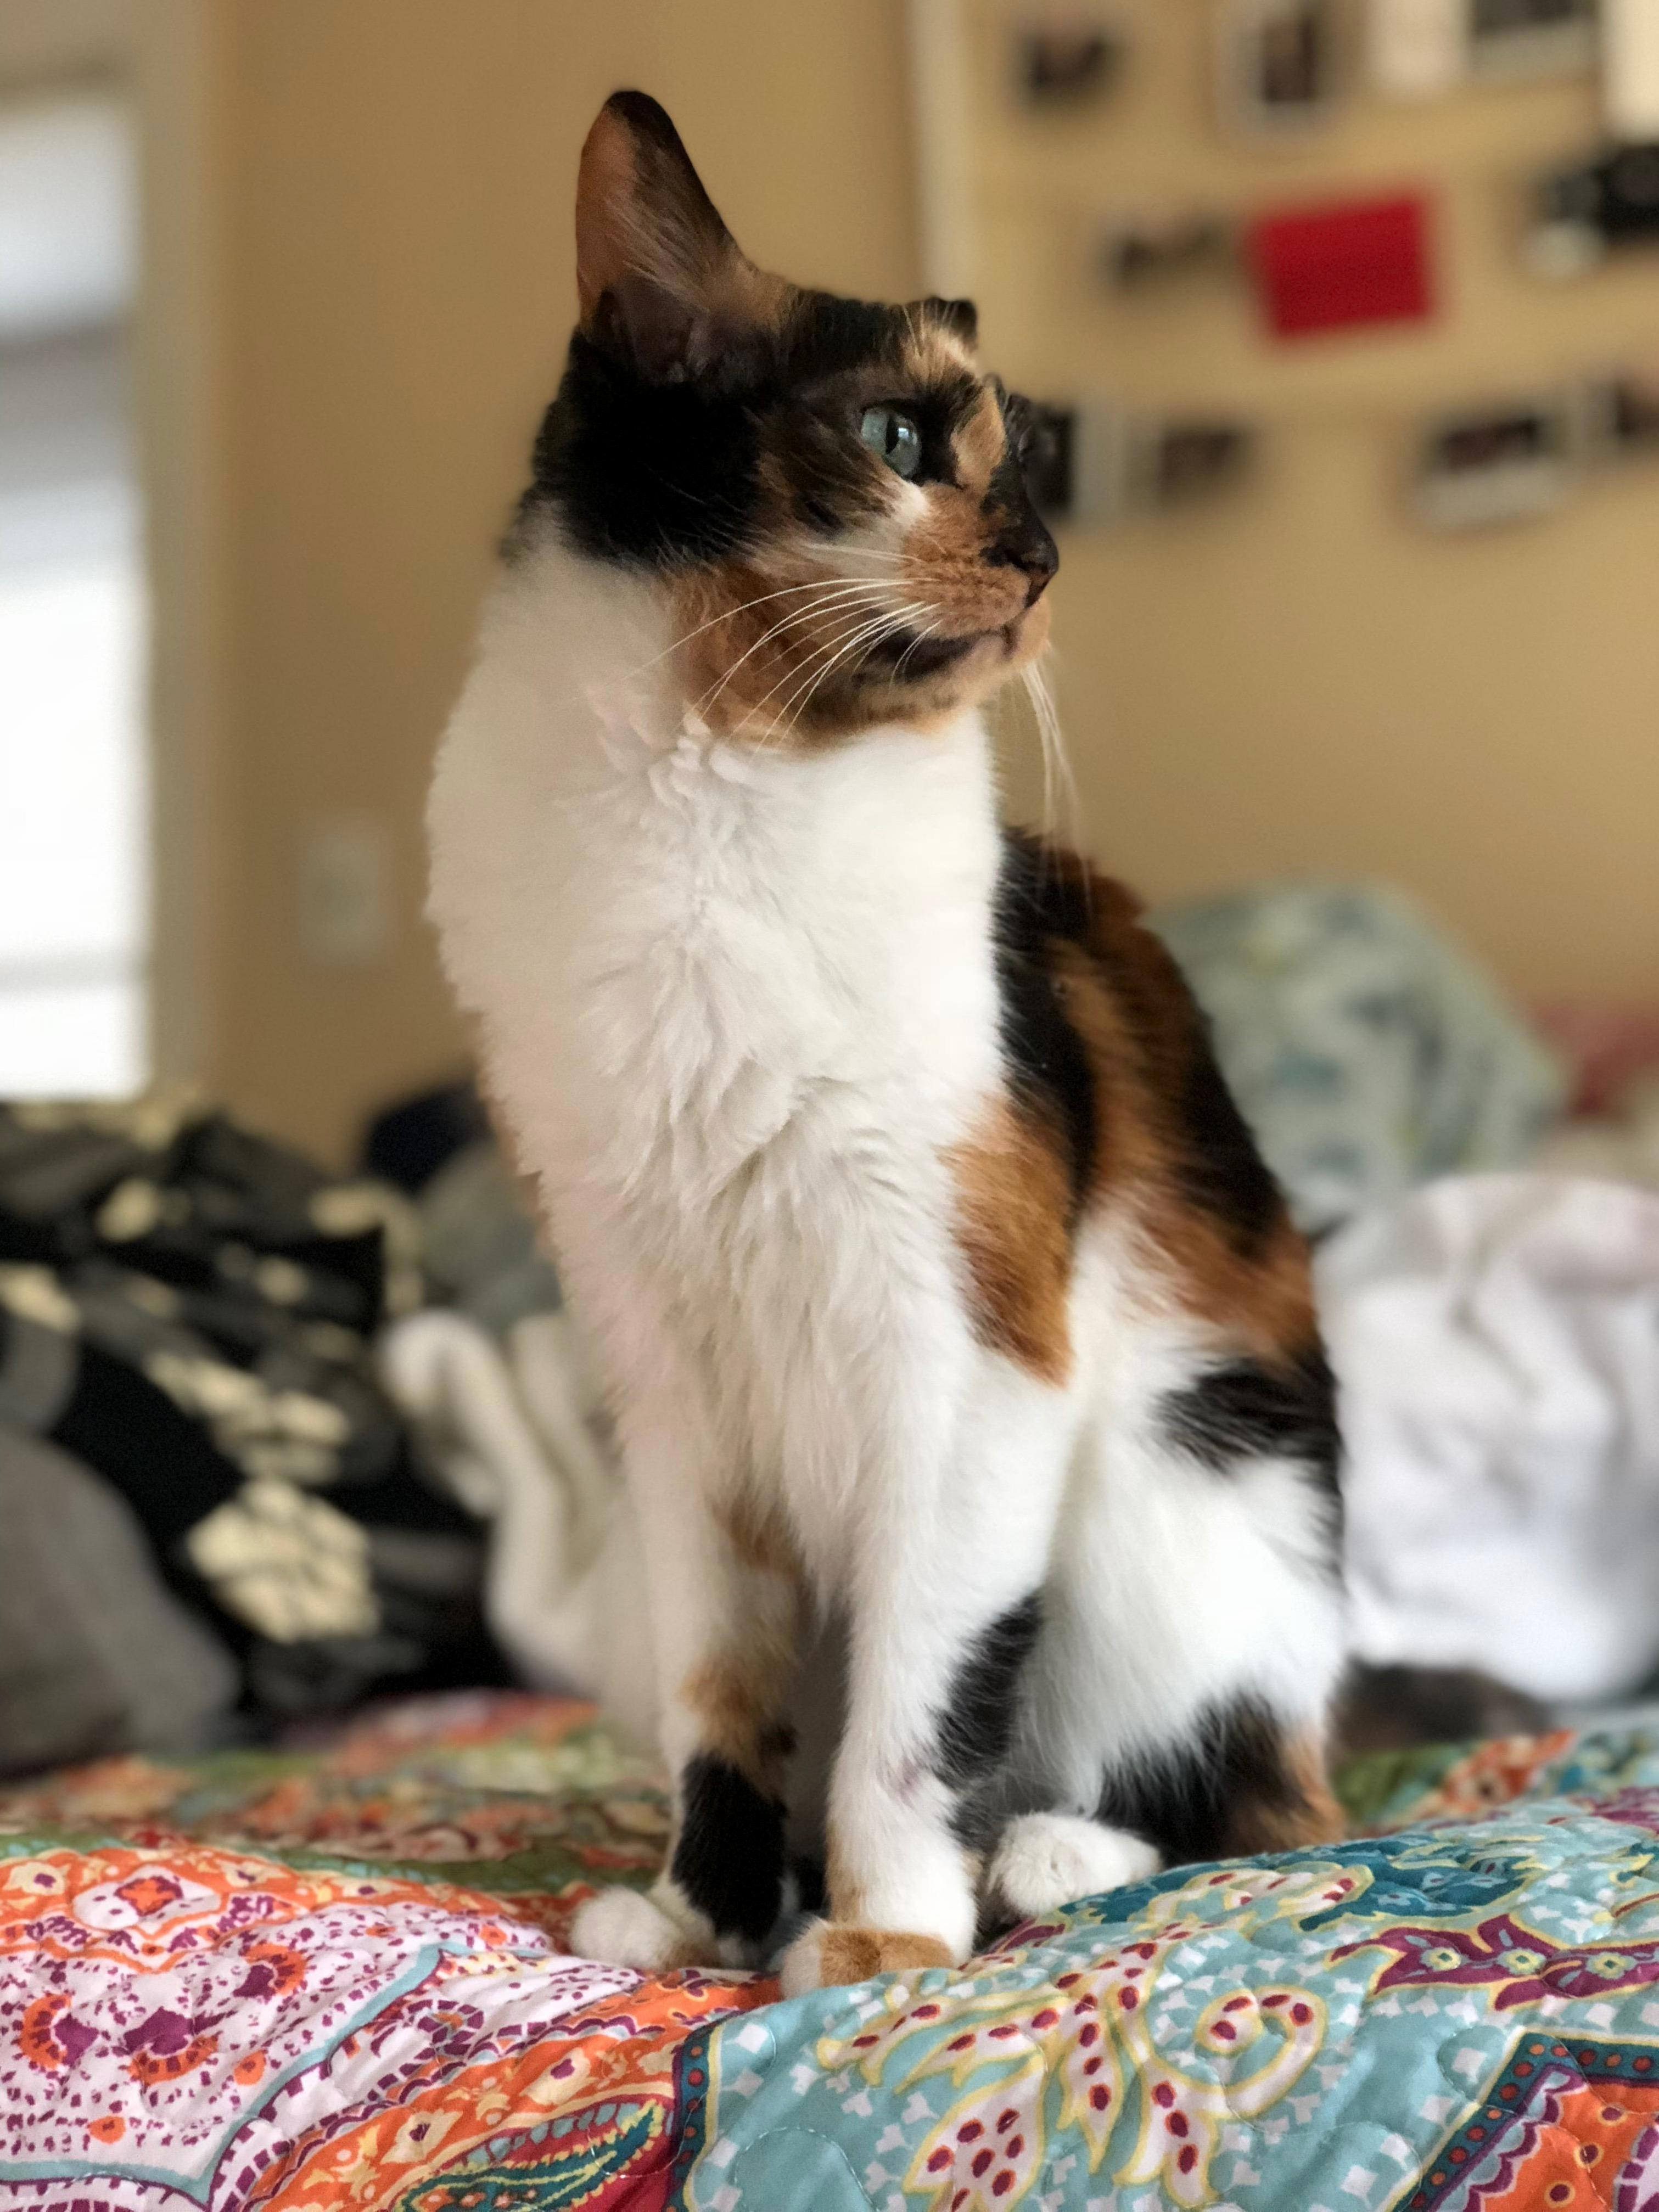 My sweet calico is looking forward to her birthday